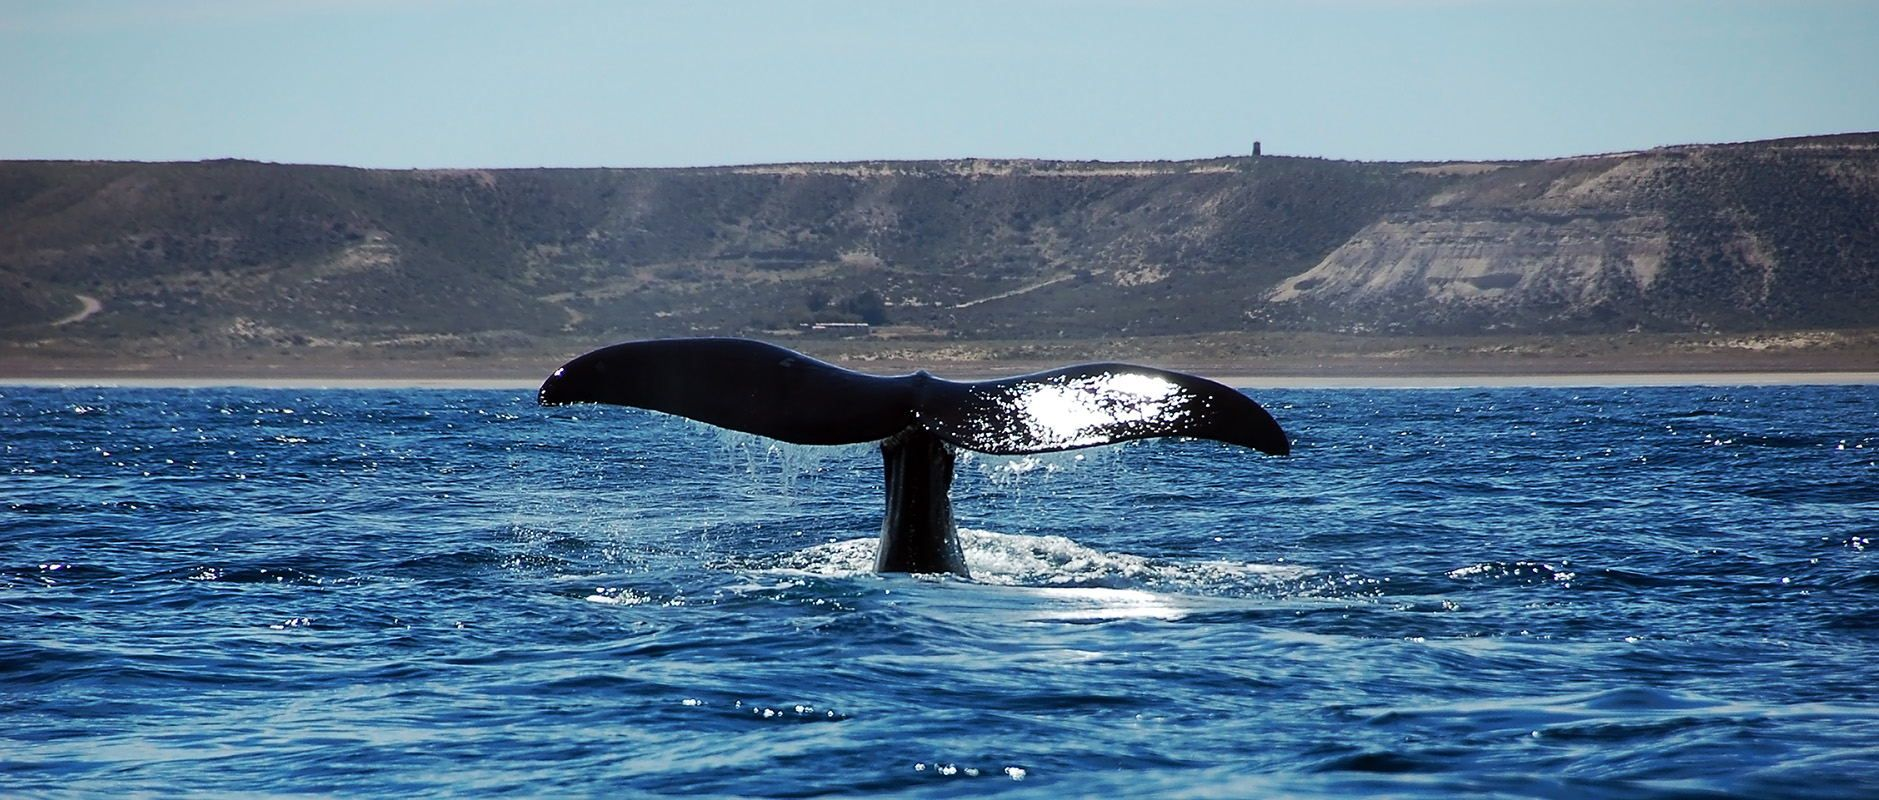 Whale watch in Argentina